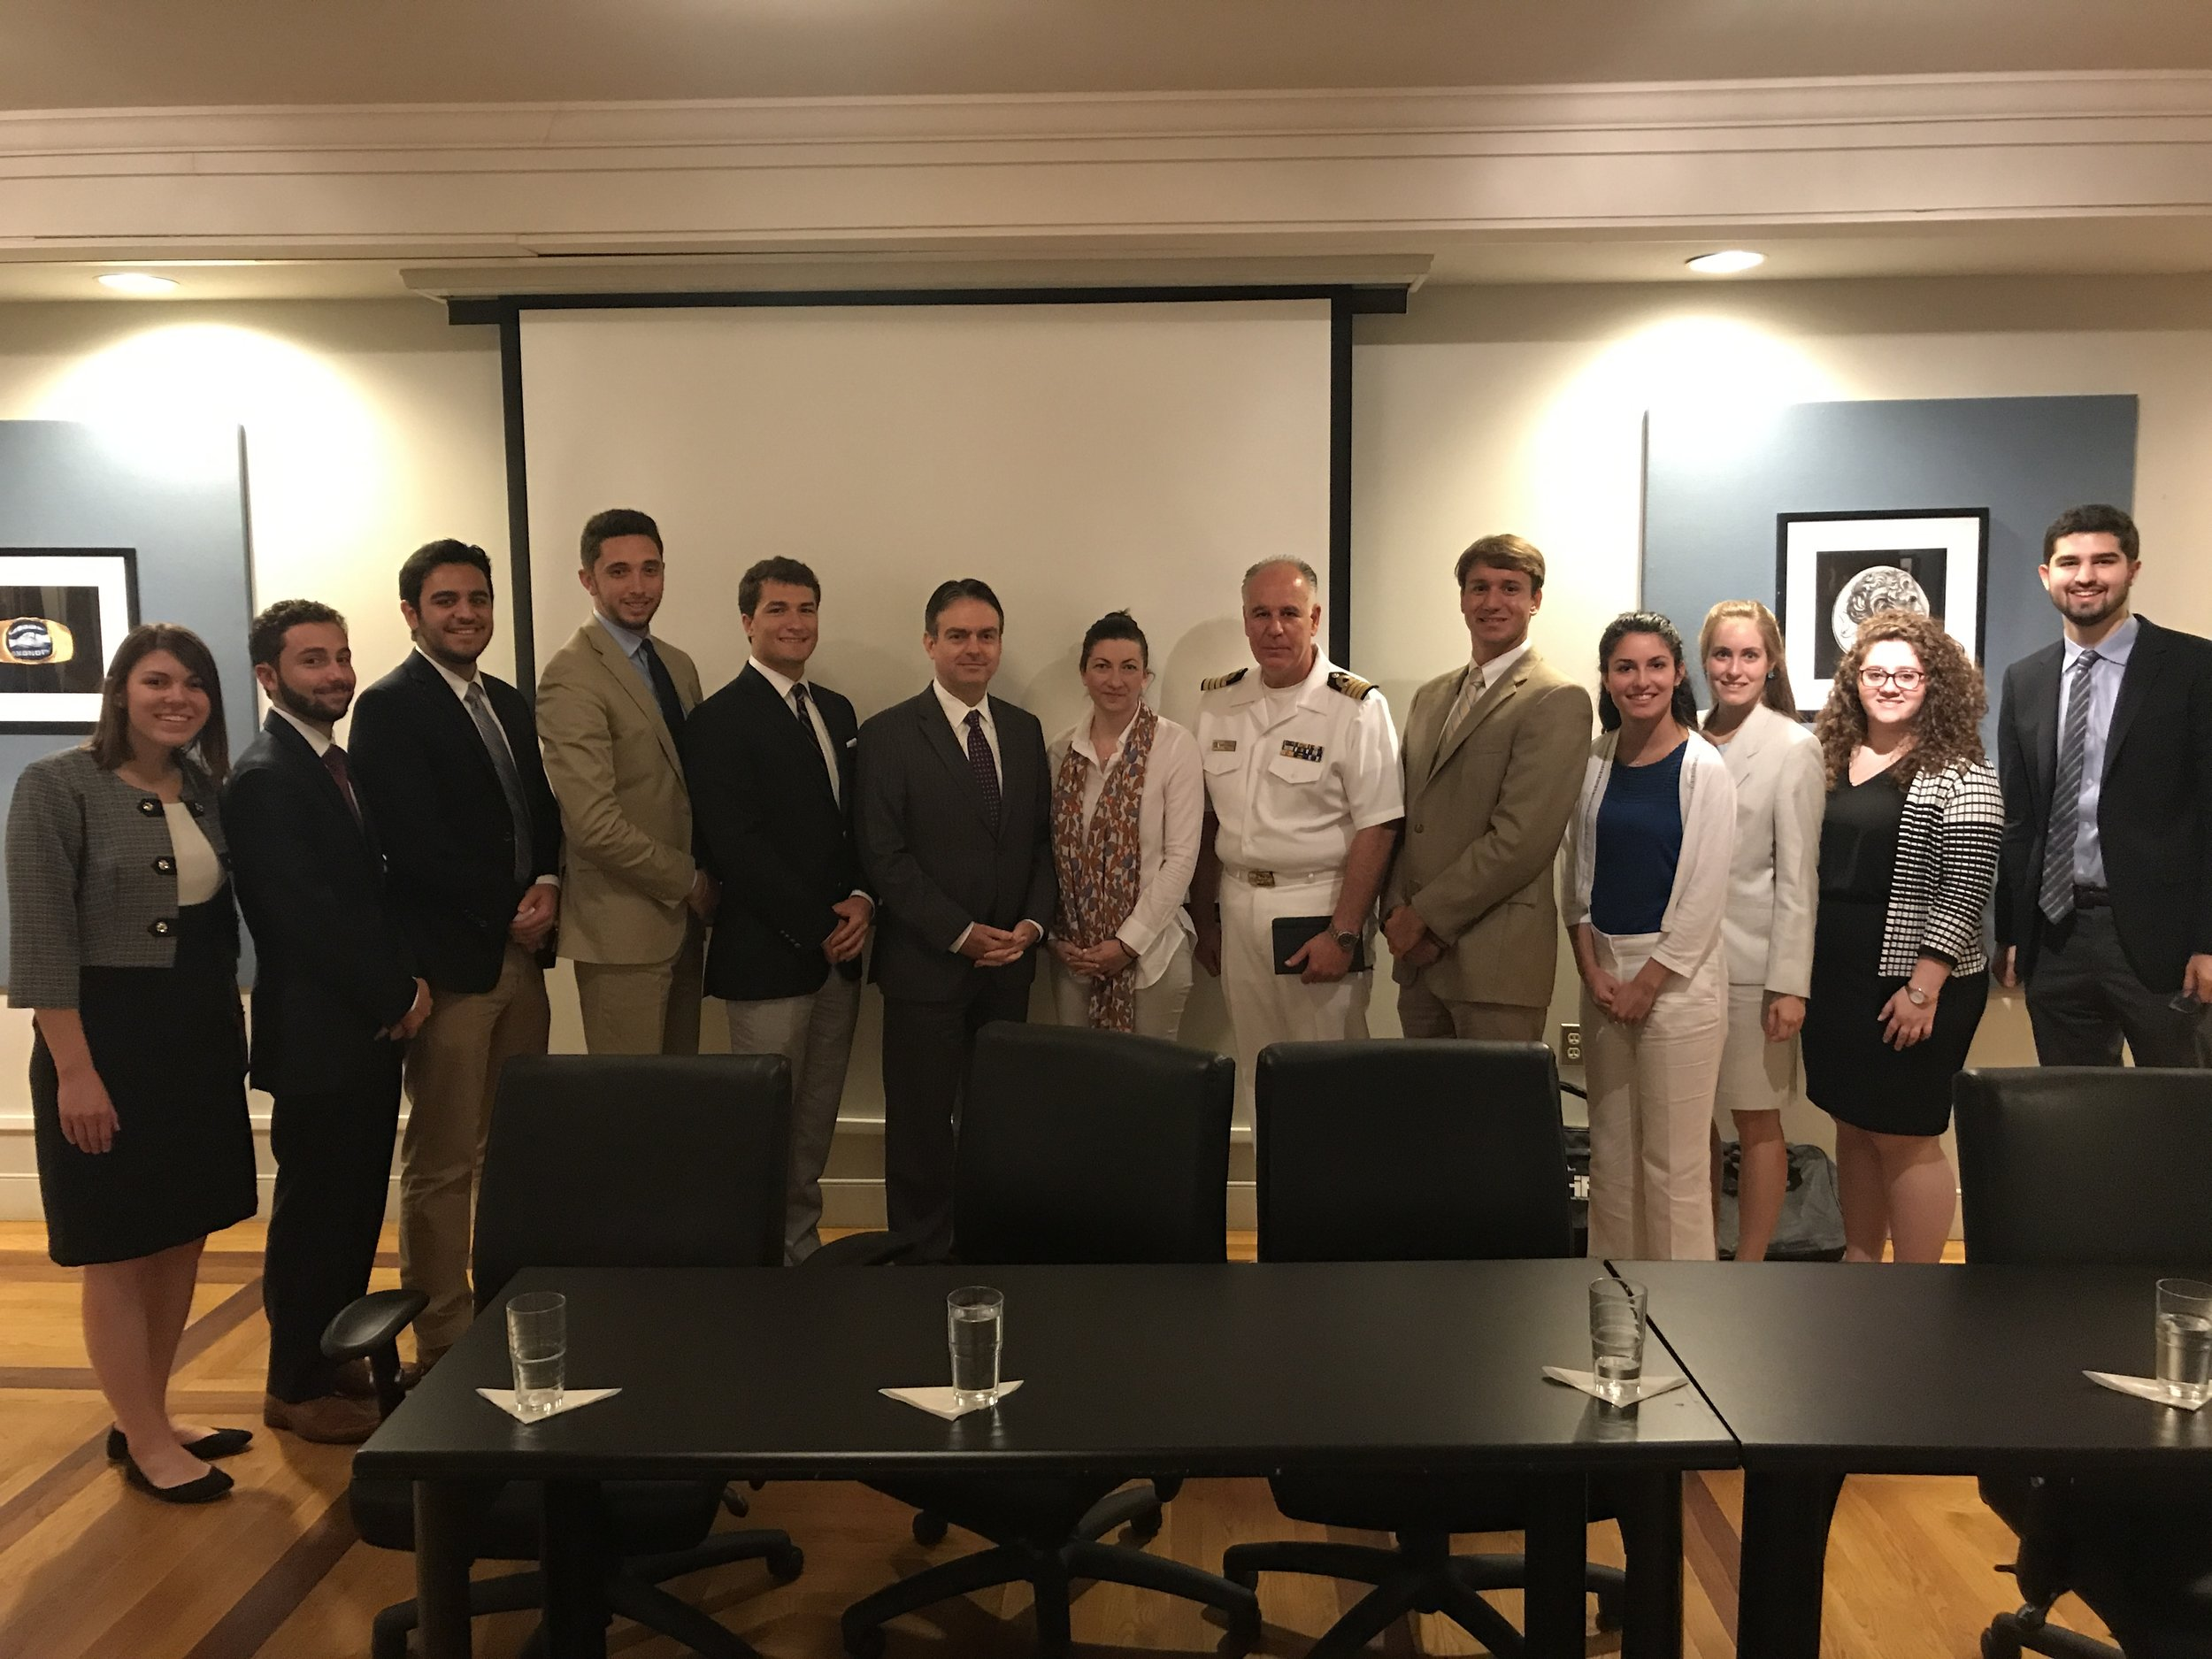 Alexios Mitsopoulos, first counselor for Political Affairs; Fani Lenou, first secretary for Economic and Commercial Affairs; and Captain Panagiotis Papanikolaou, Naval Attaché.